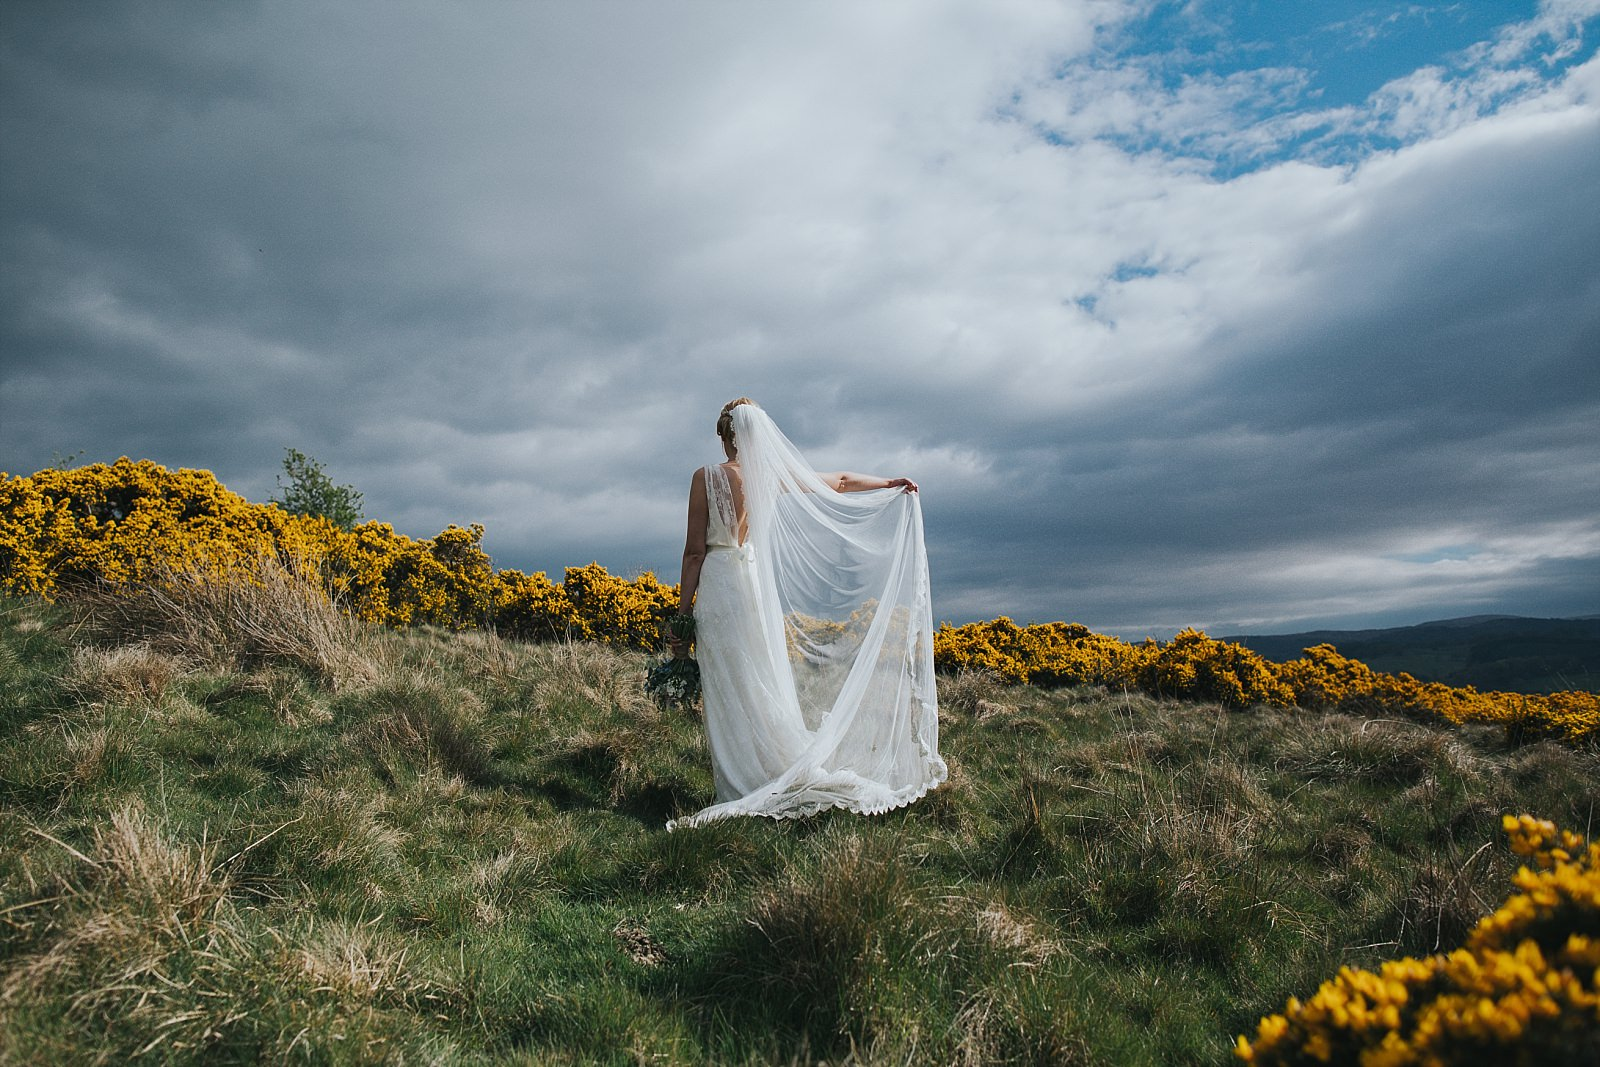 bride lifting dress up amongst gorse bushes with dramatic landscape